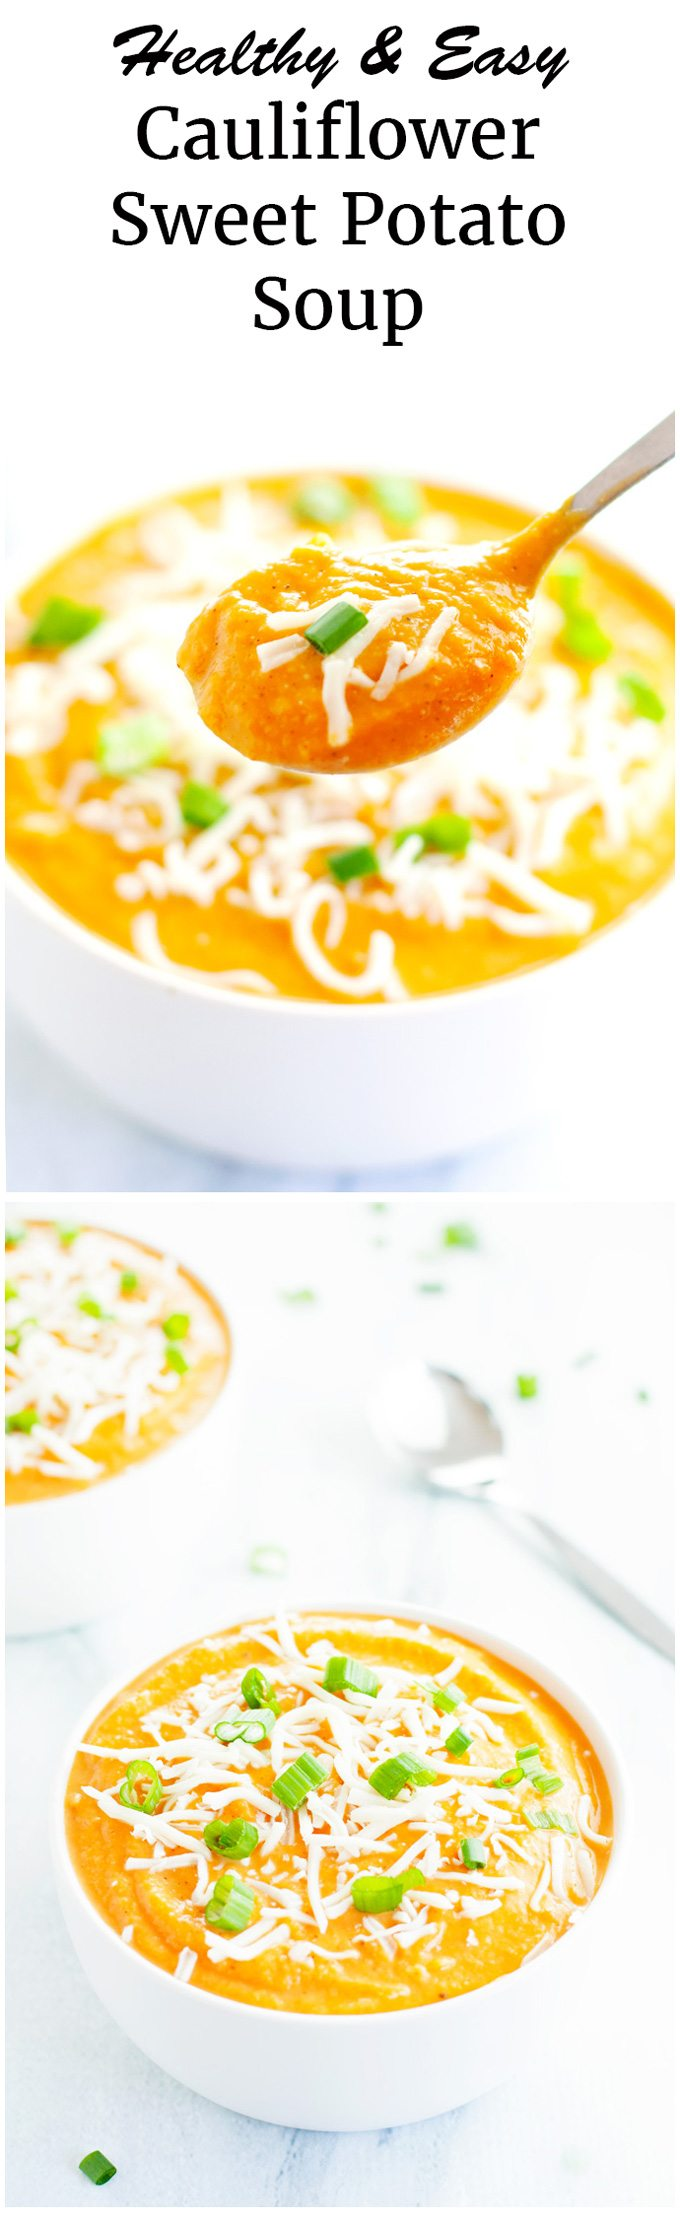 cauliflower sweet potato soup topped with green onions and shredded cheese. top photo has stylized title and a heaping spoonful of soup. bottom photo has two bowls of soup.